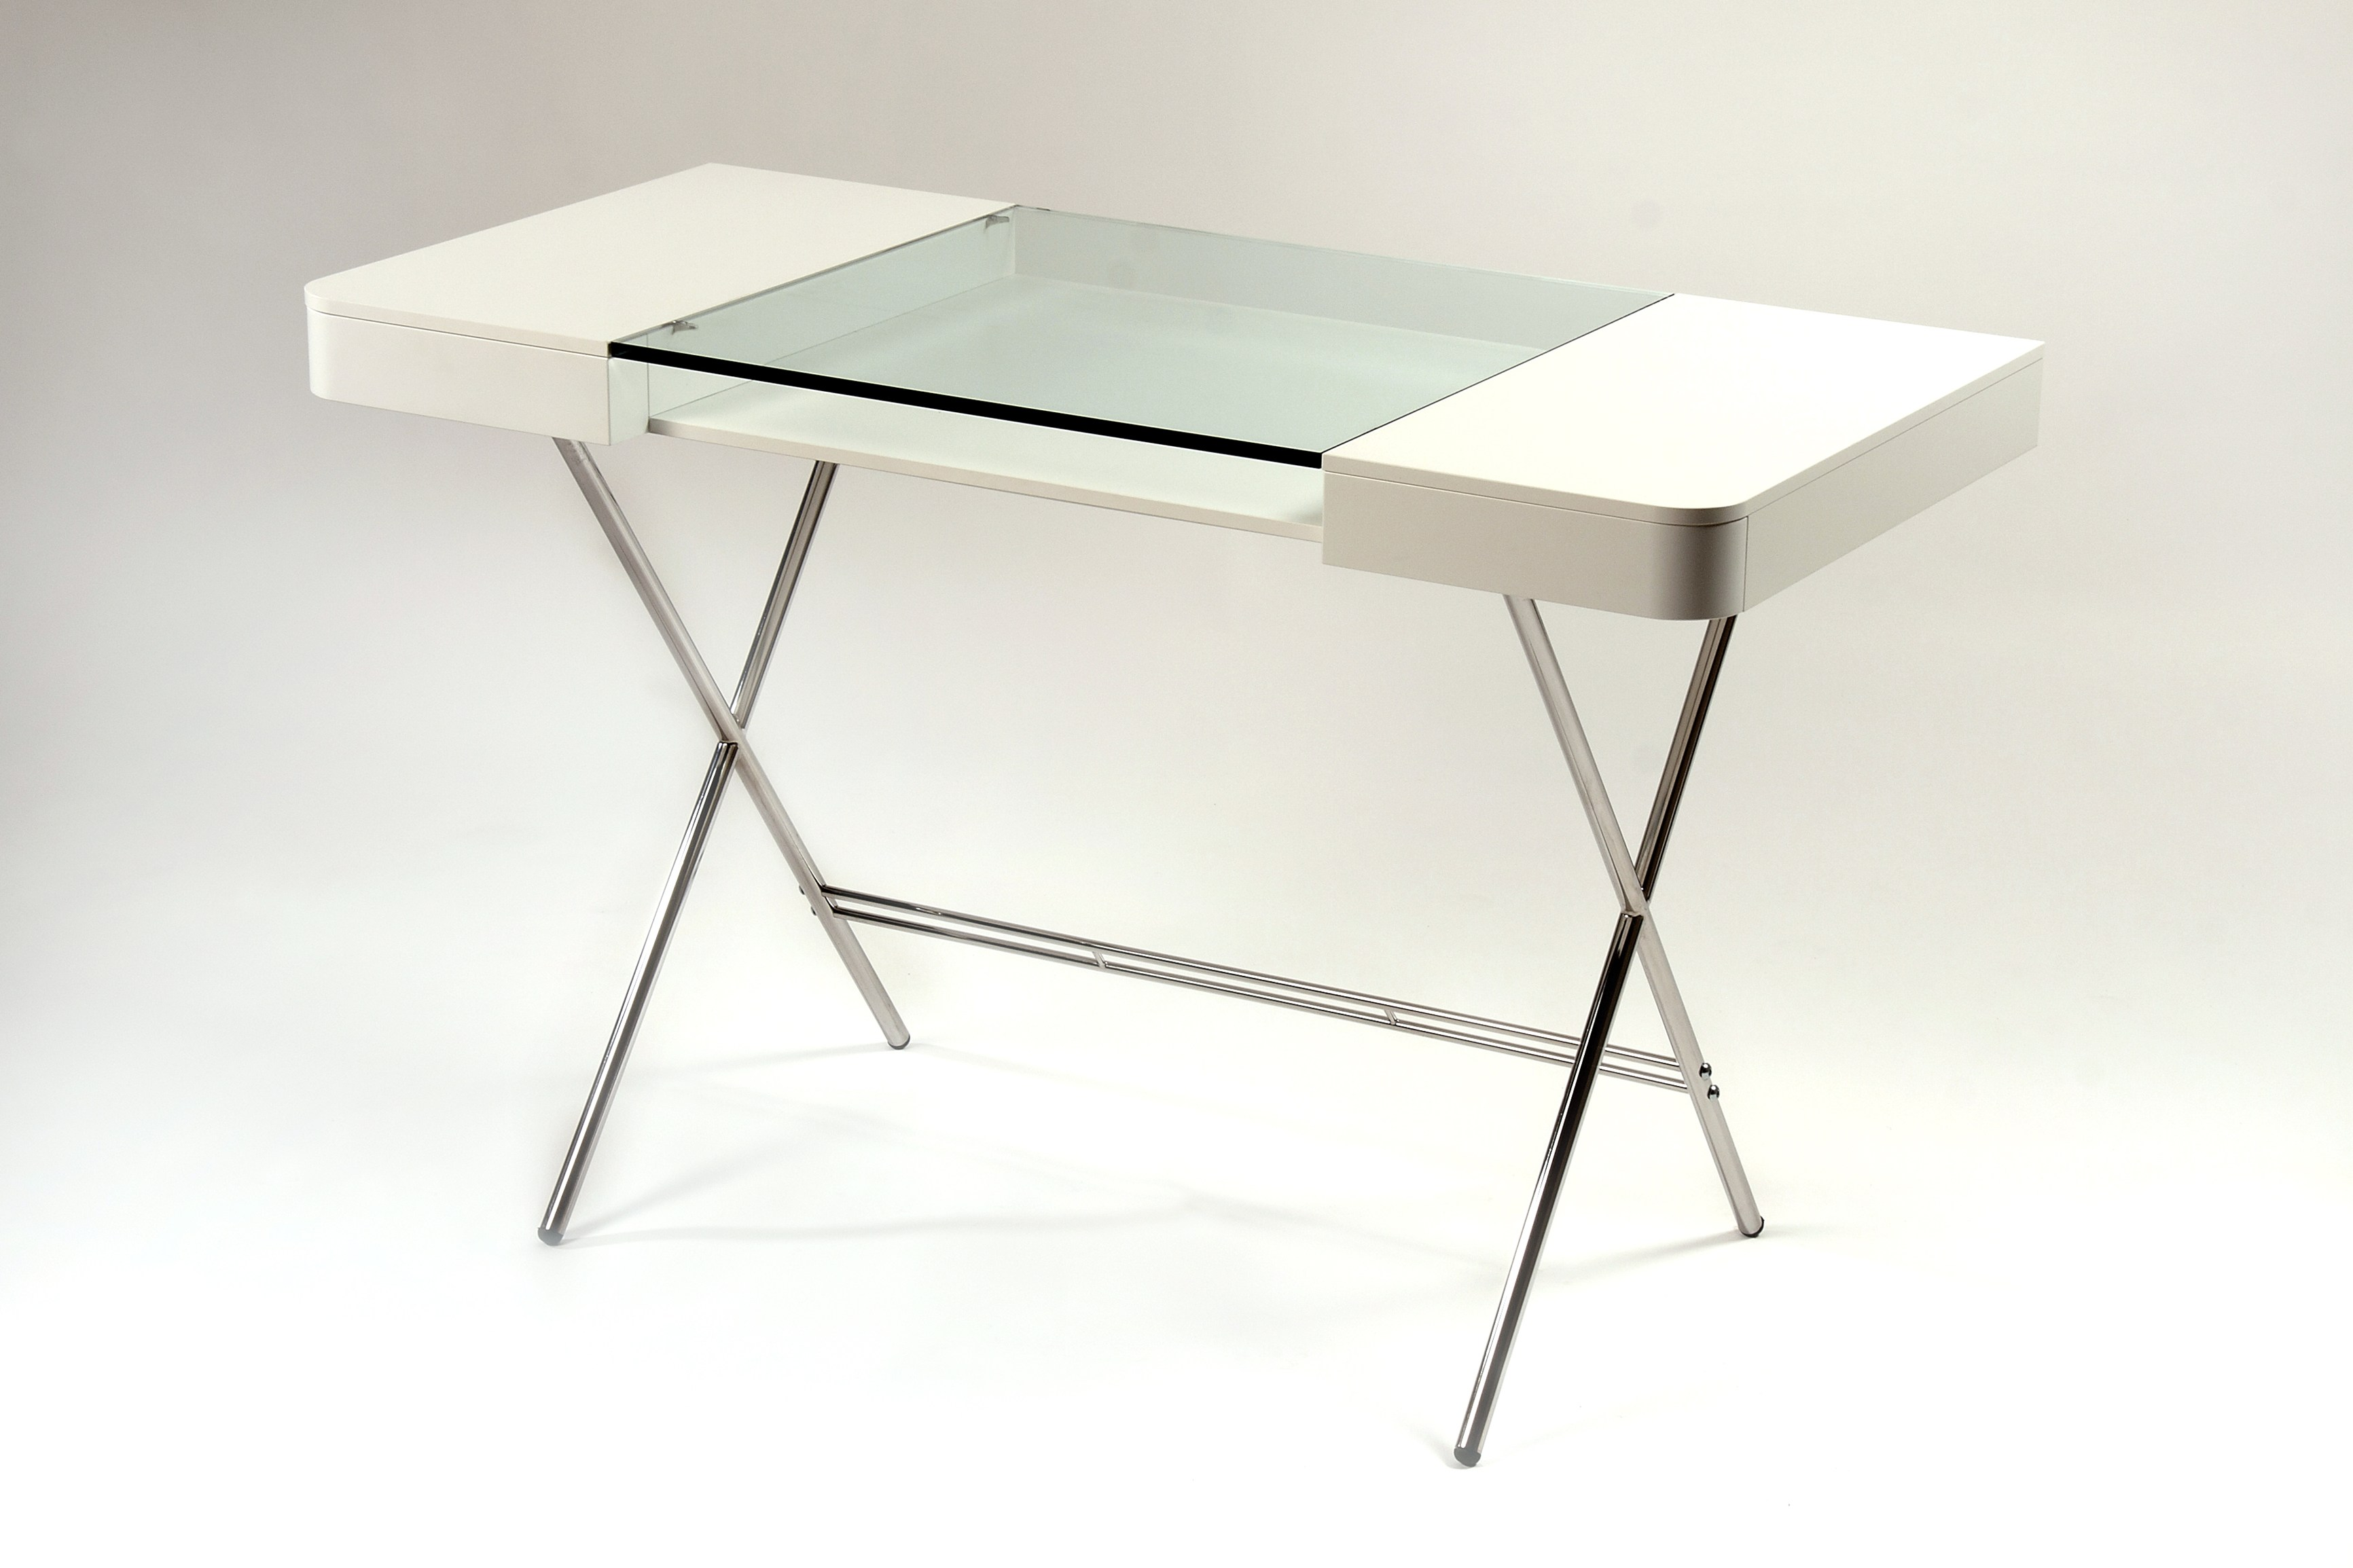 mdf and glass writing desk with drawers cosimo laquÉ blanc mat  - mdf and glass writing desk with drawers cosimo laquÉ blanc mat cosimocollection by adentro design marco zanuso